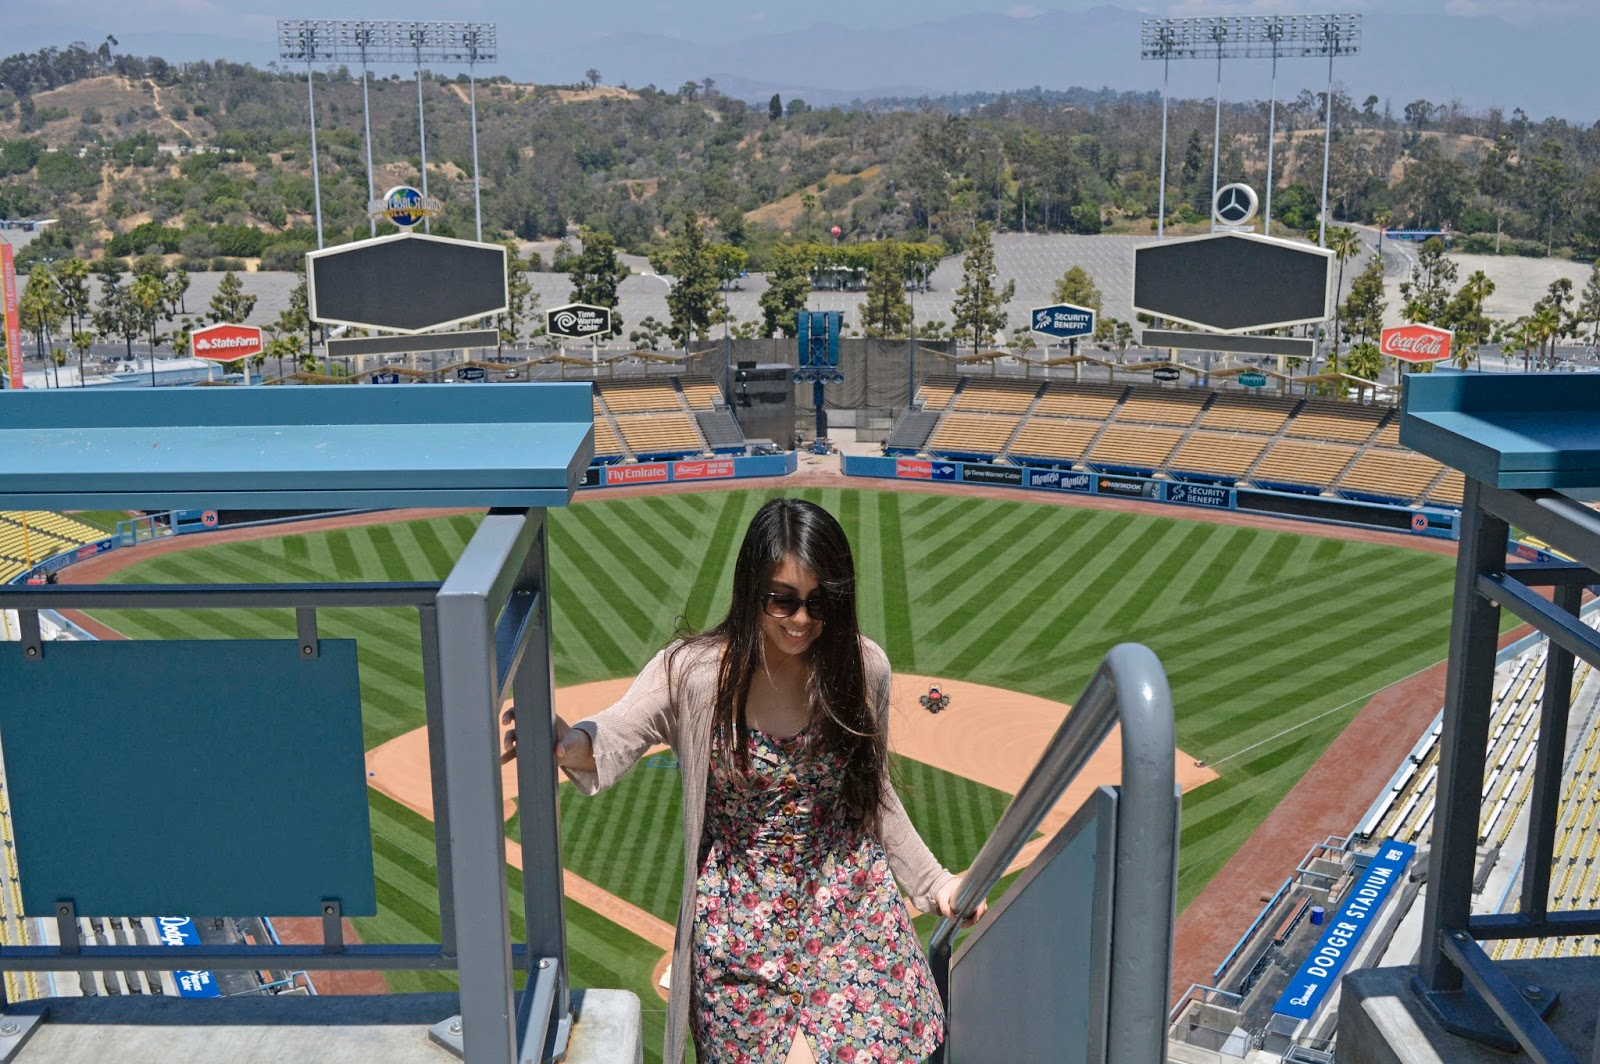 silvia-armas-usa-diary-trip-sunset-travel-fashion-blogger-ecuador-latina-las-vegas-los-angeles-texas-california-style-landscapes-family-dodgers-stadium